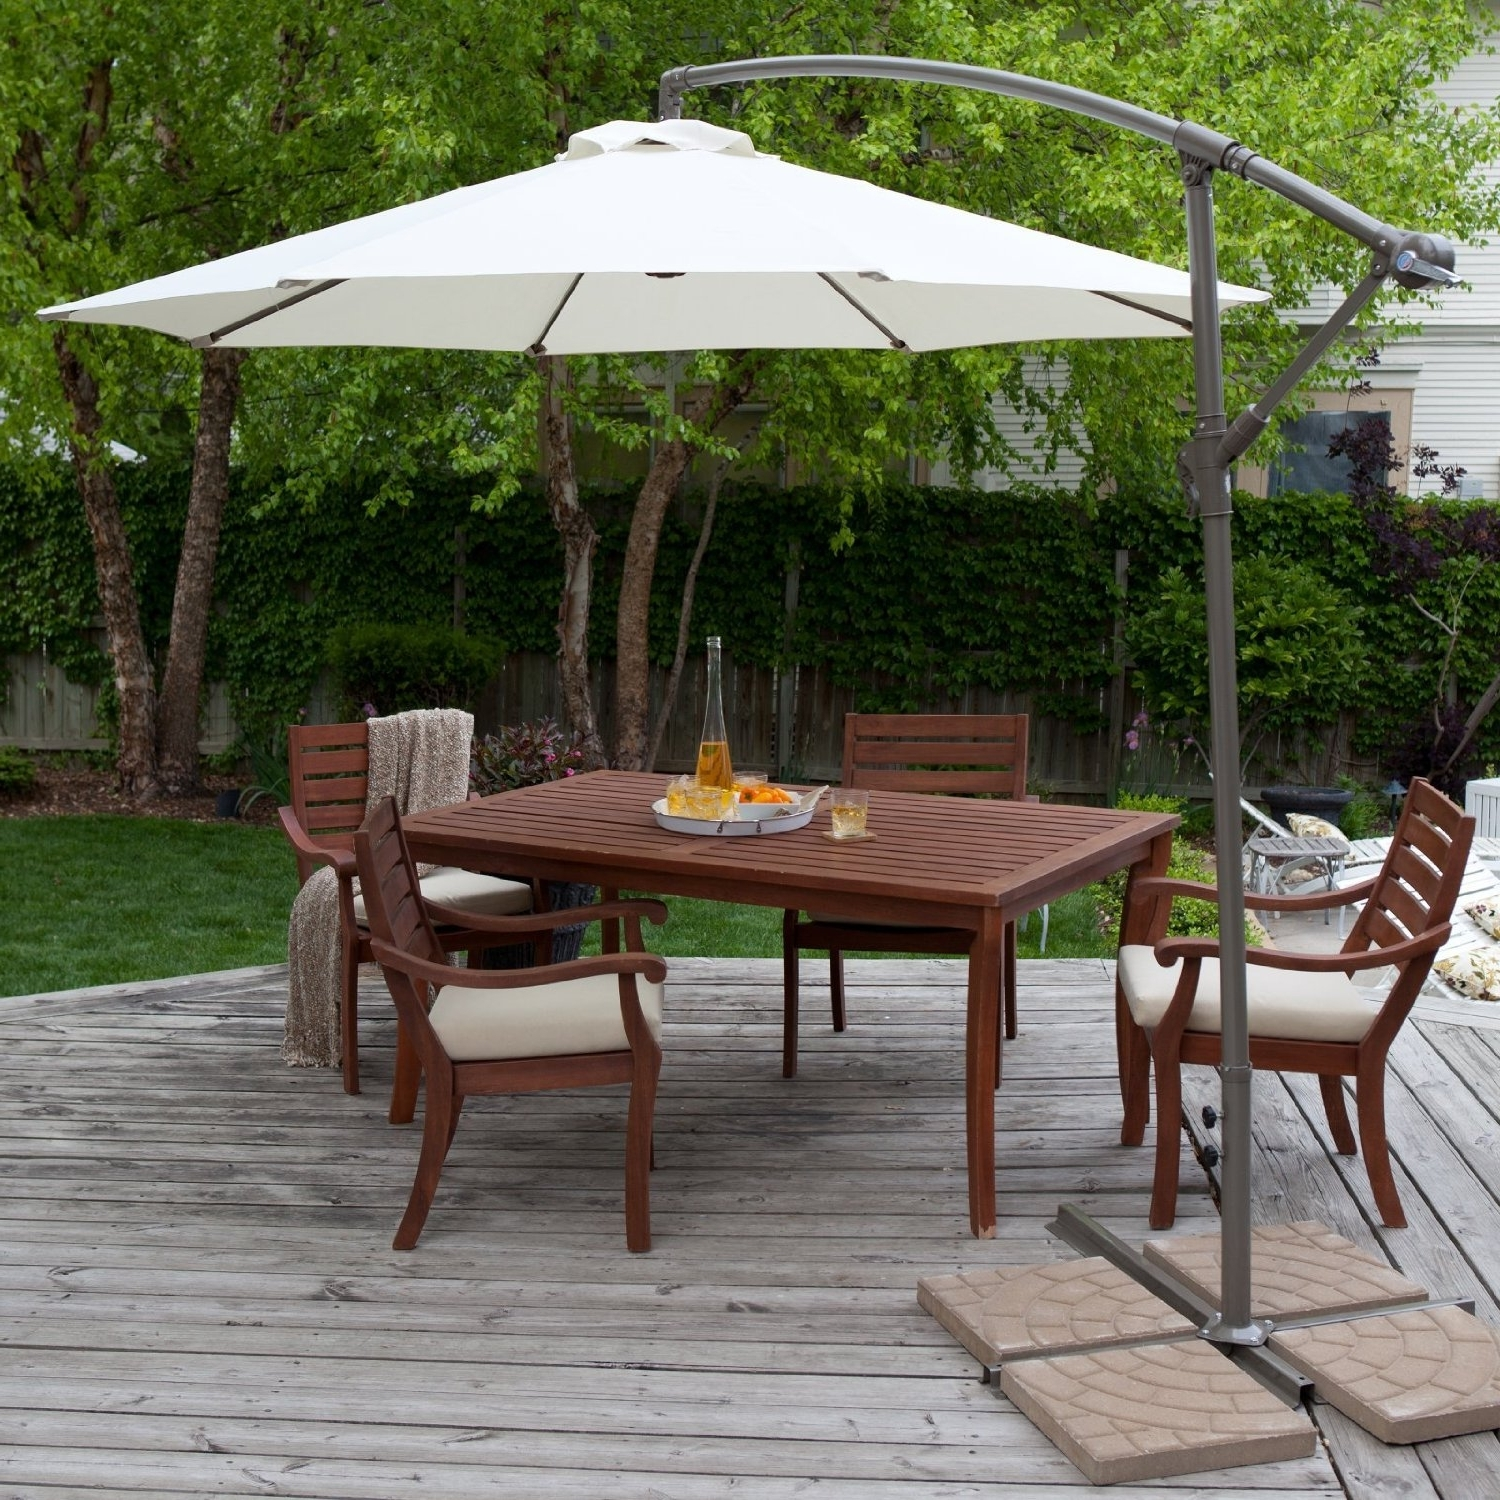 Rectangular Offset Patio Umbrellas Inside Most Popular Furniture: Decoration Exciting Offset Patio Umbrella With Grey Iron (View 13 of 20)